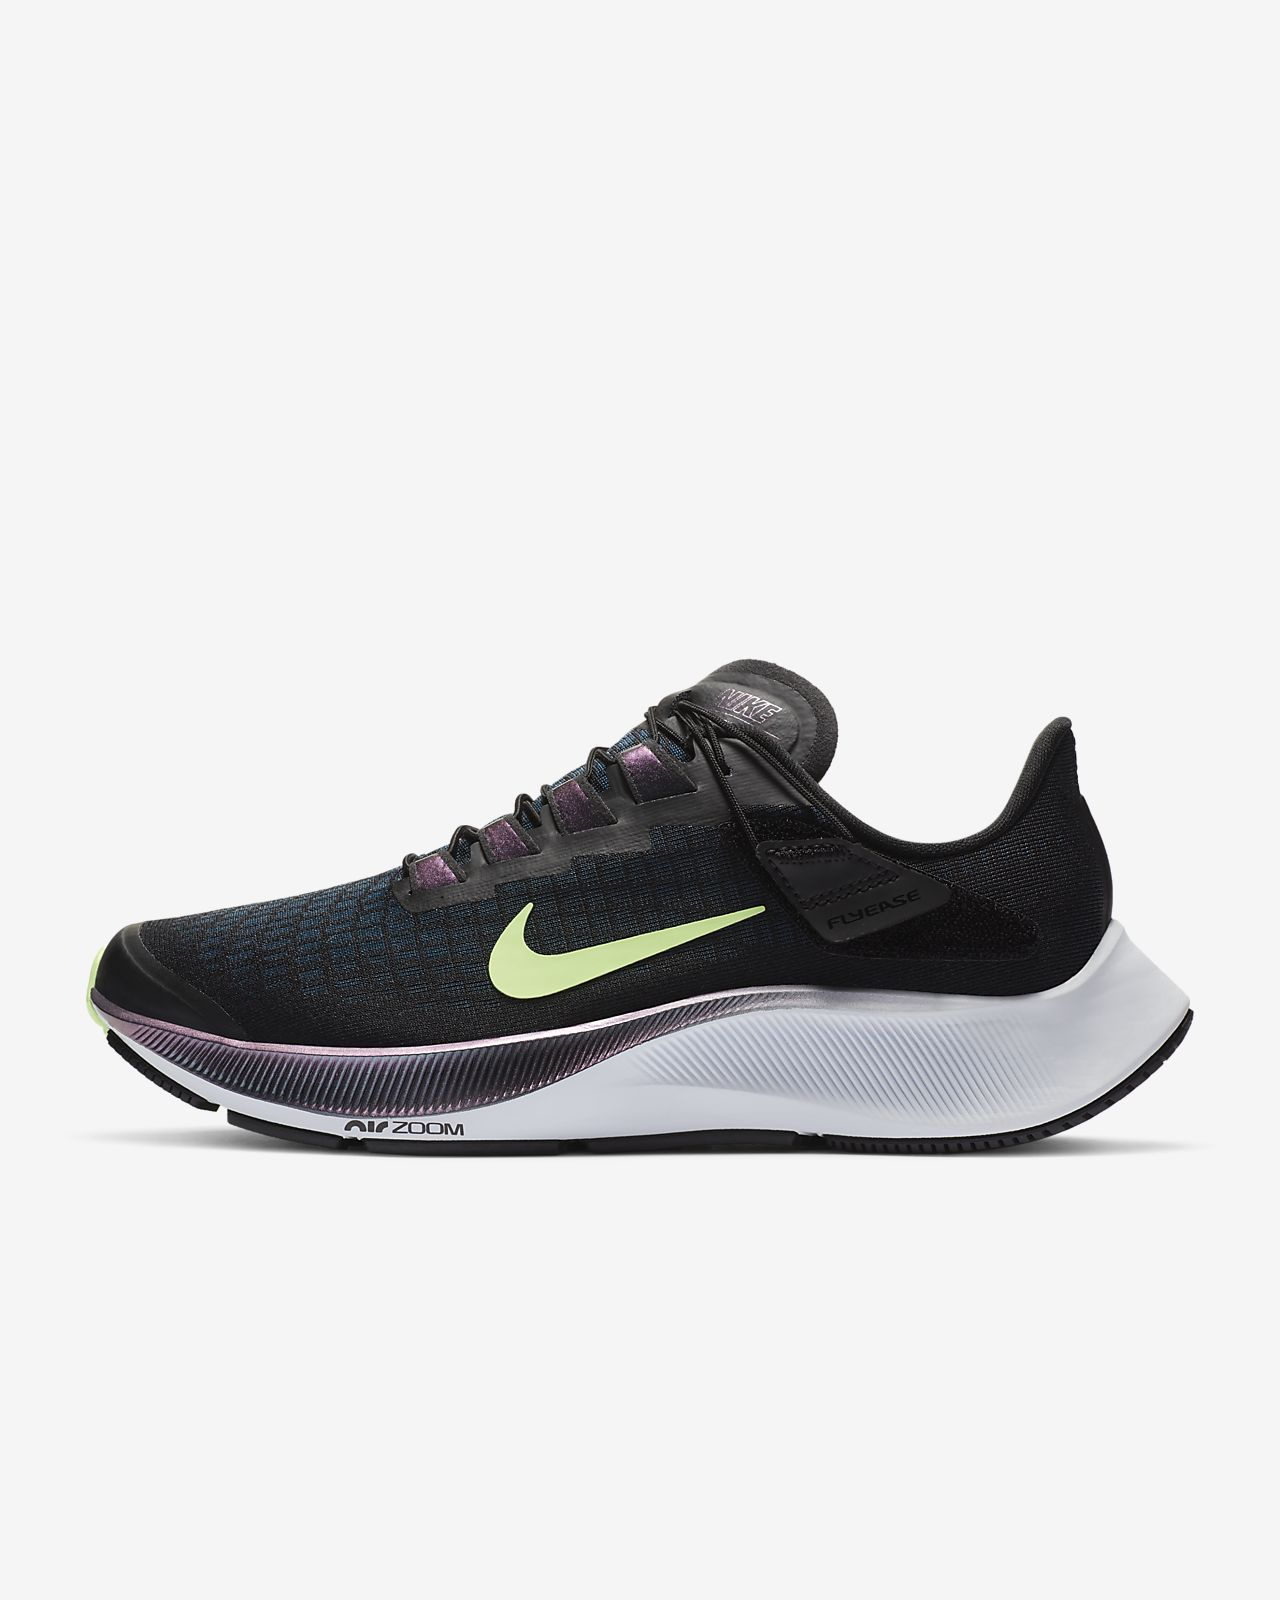 Nike Air Zoom Pegasus 37 FlyEase Women's Running Shoe